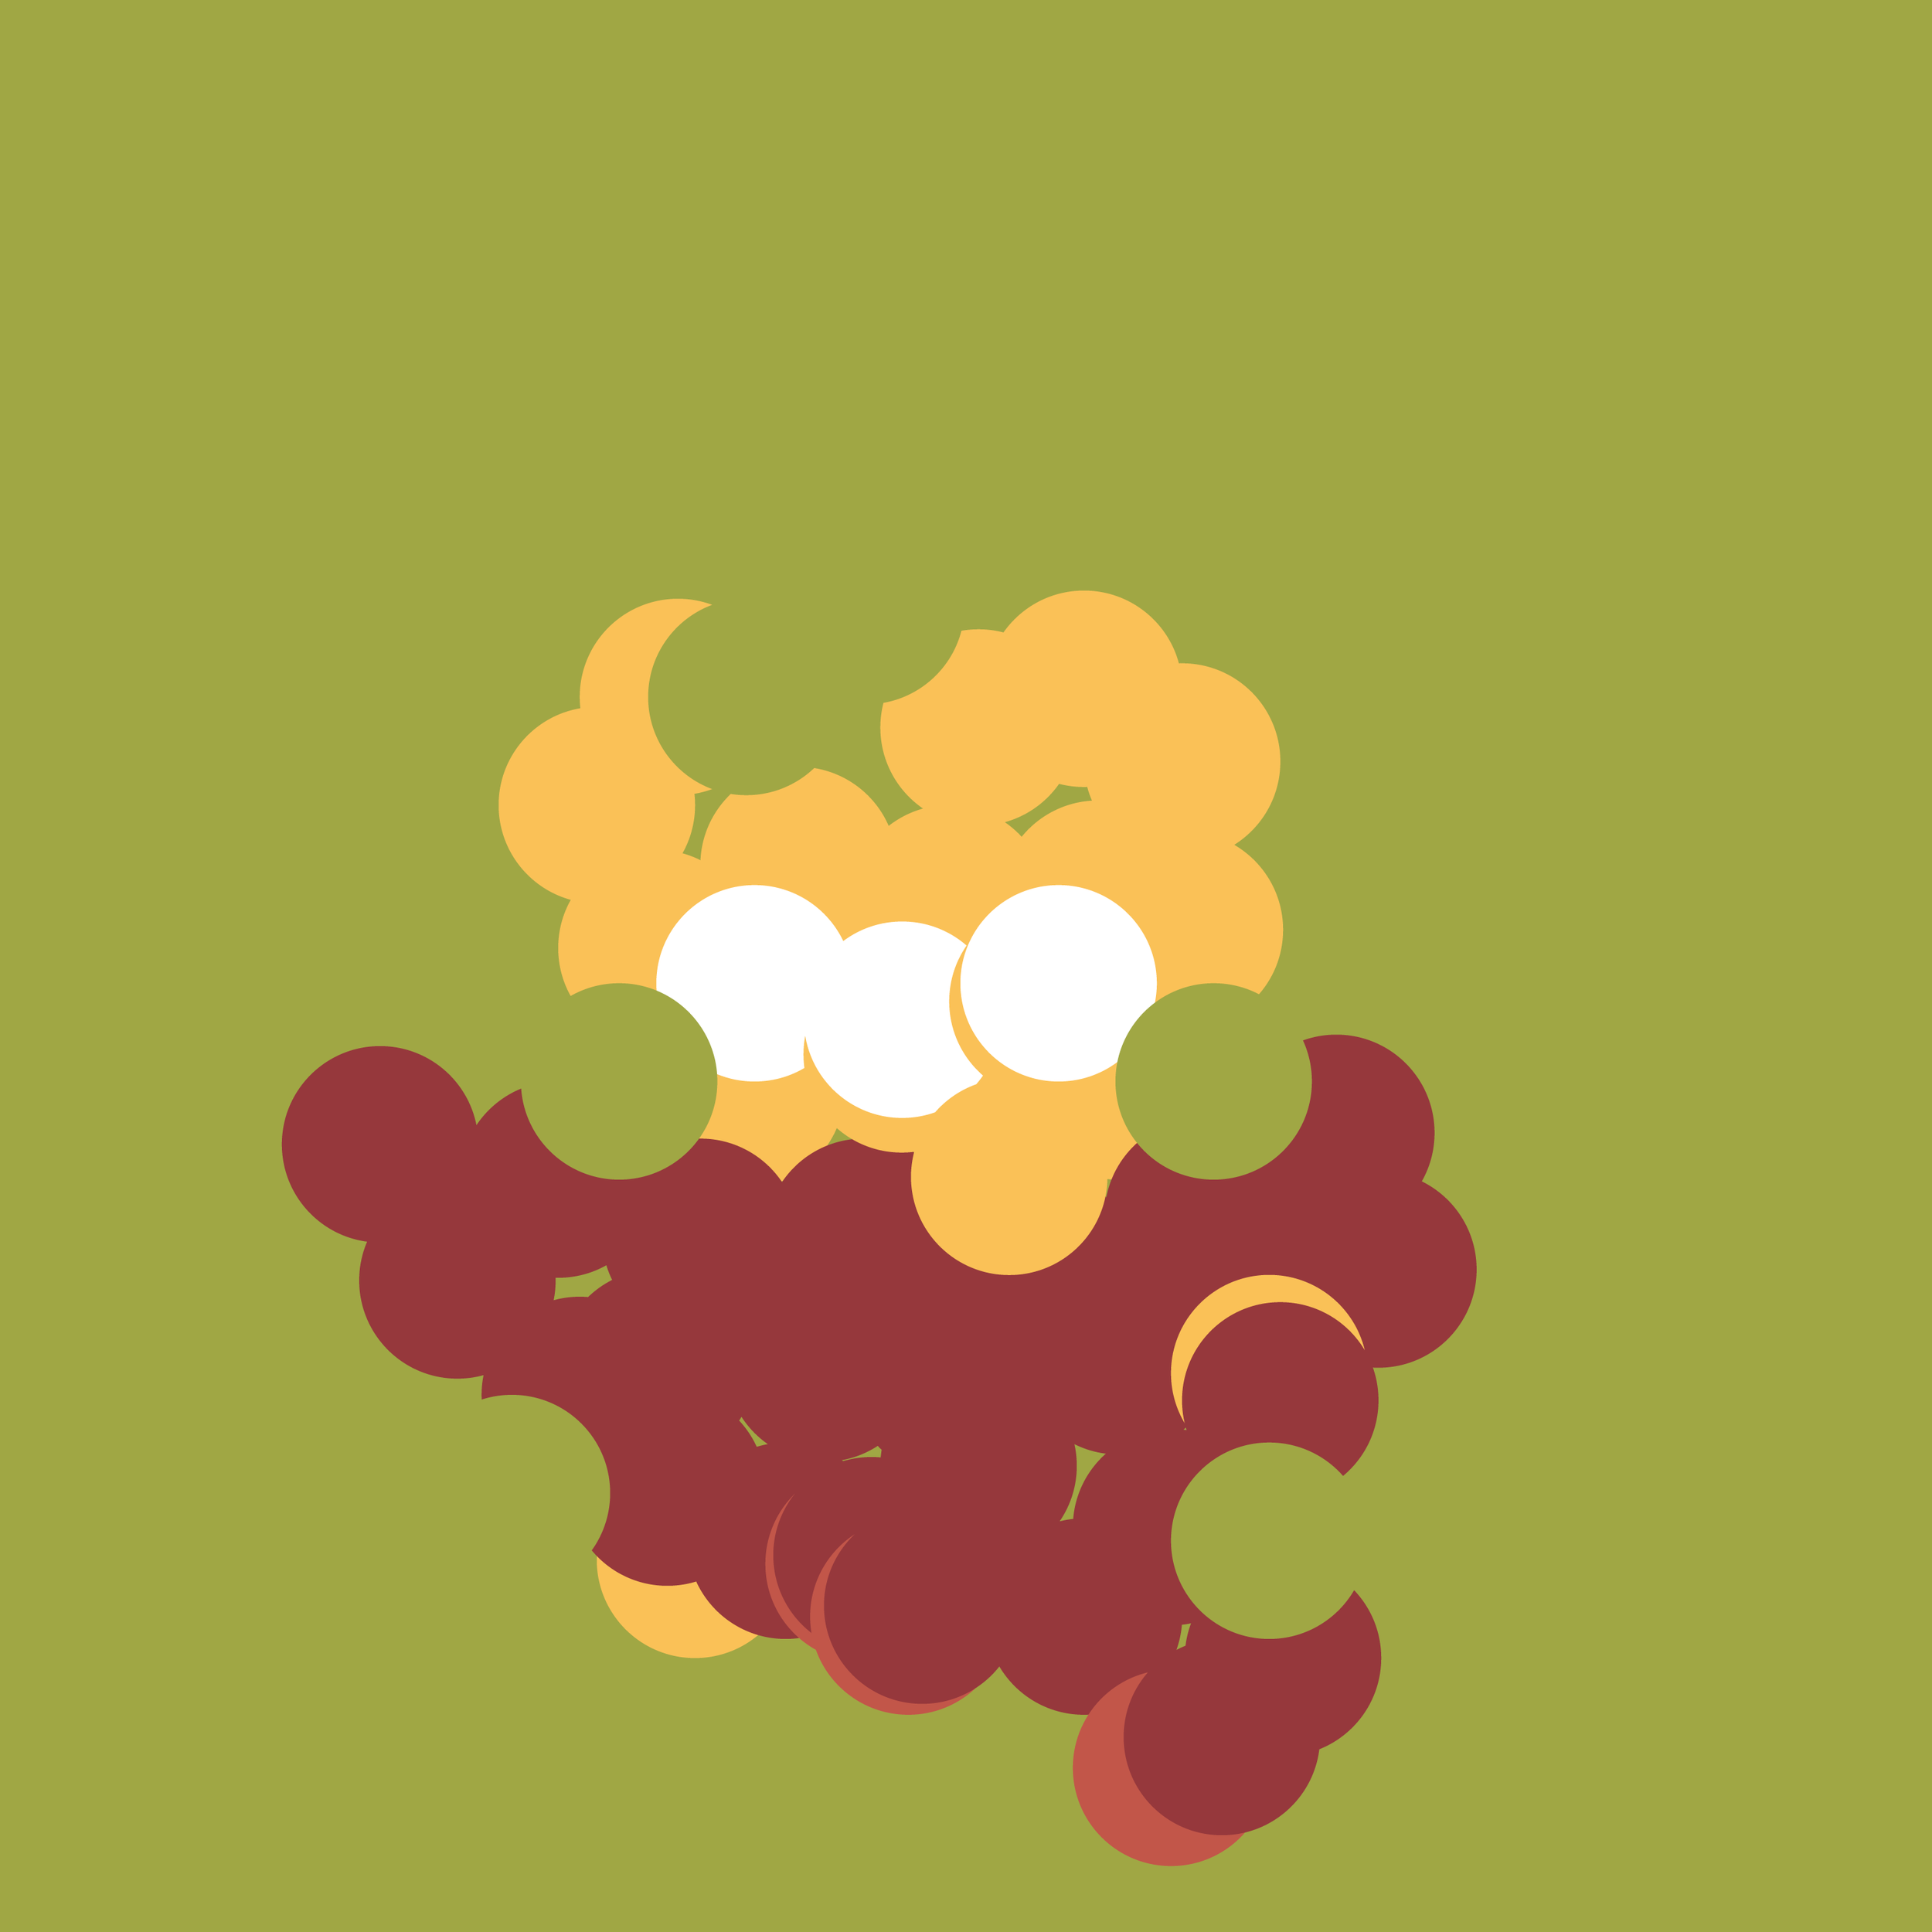 Flower_8-01.png